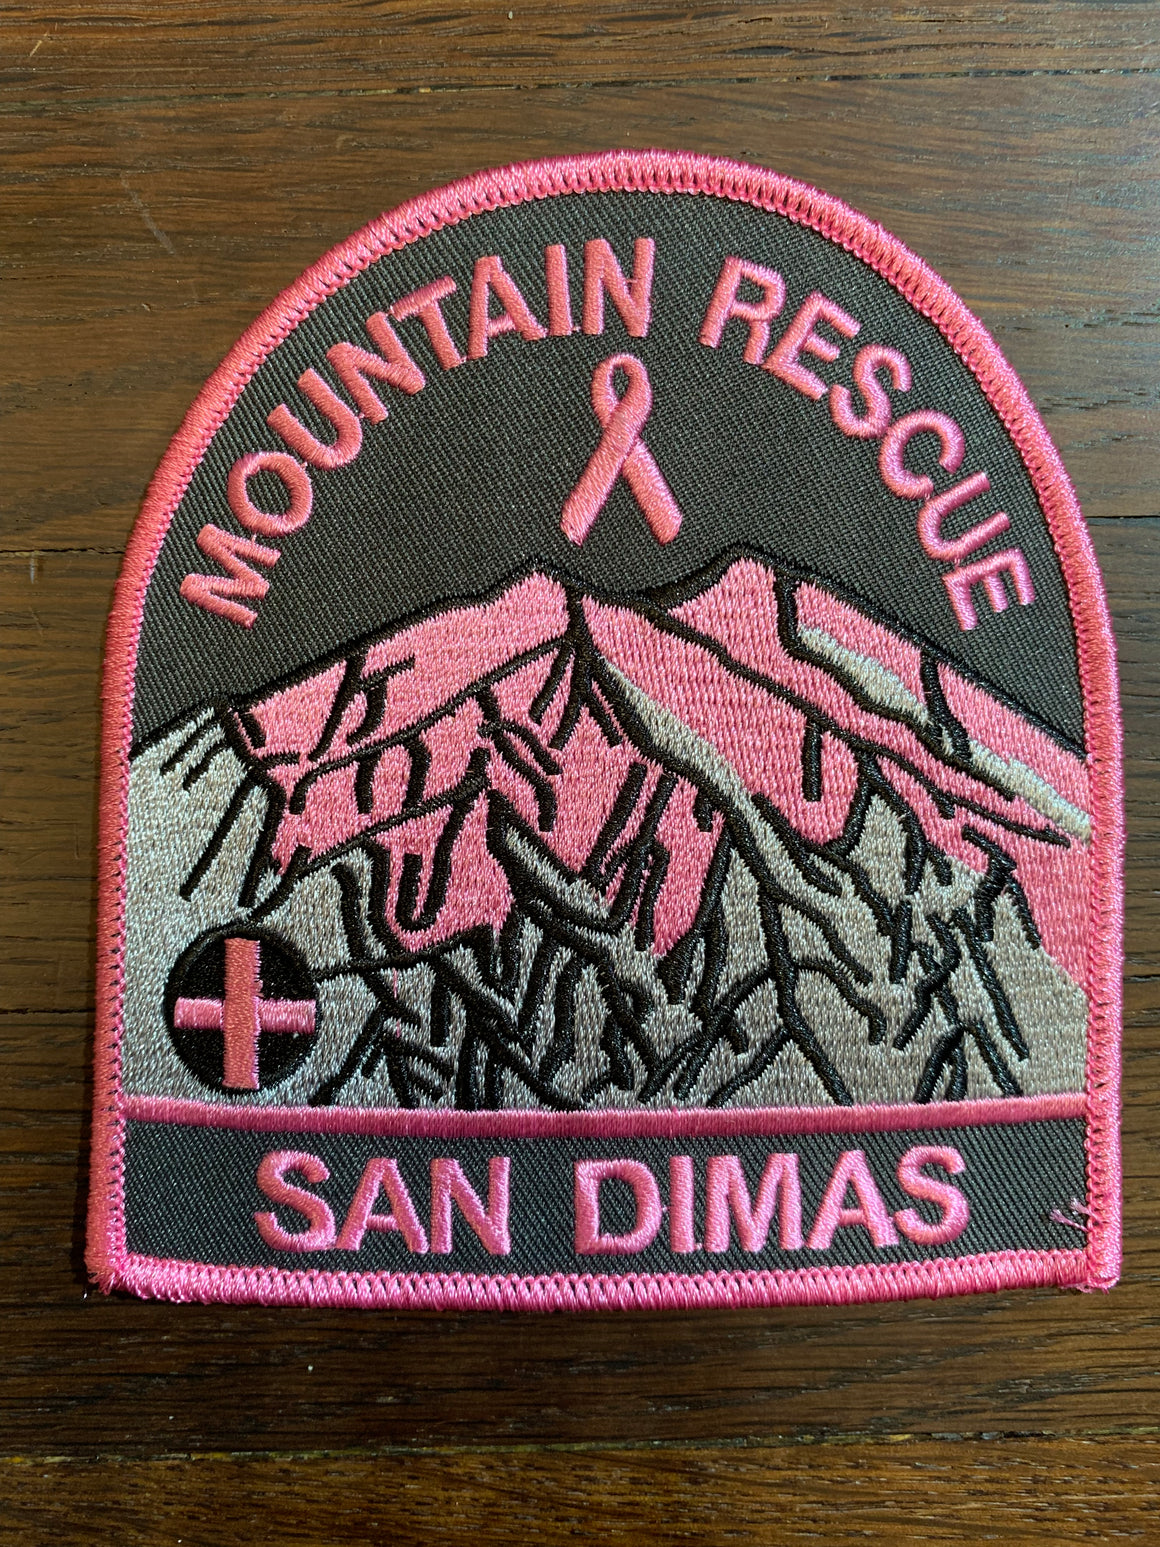 San Dimas Mountain Rescue Team  Patch  #pinkpatchproject